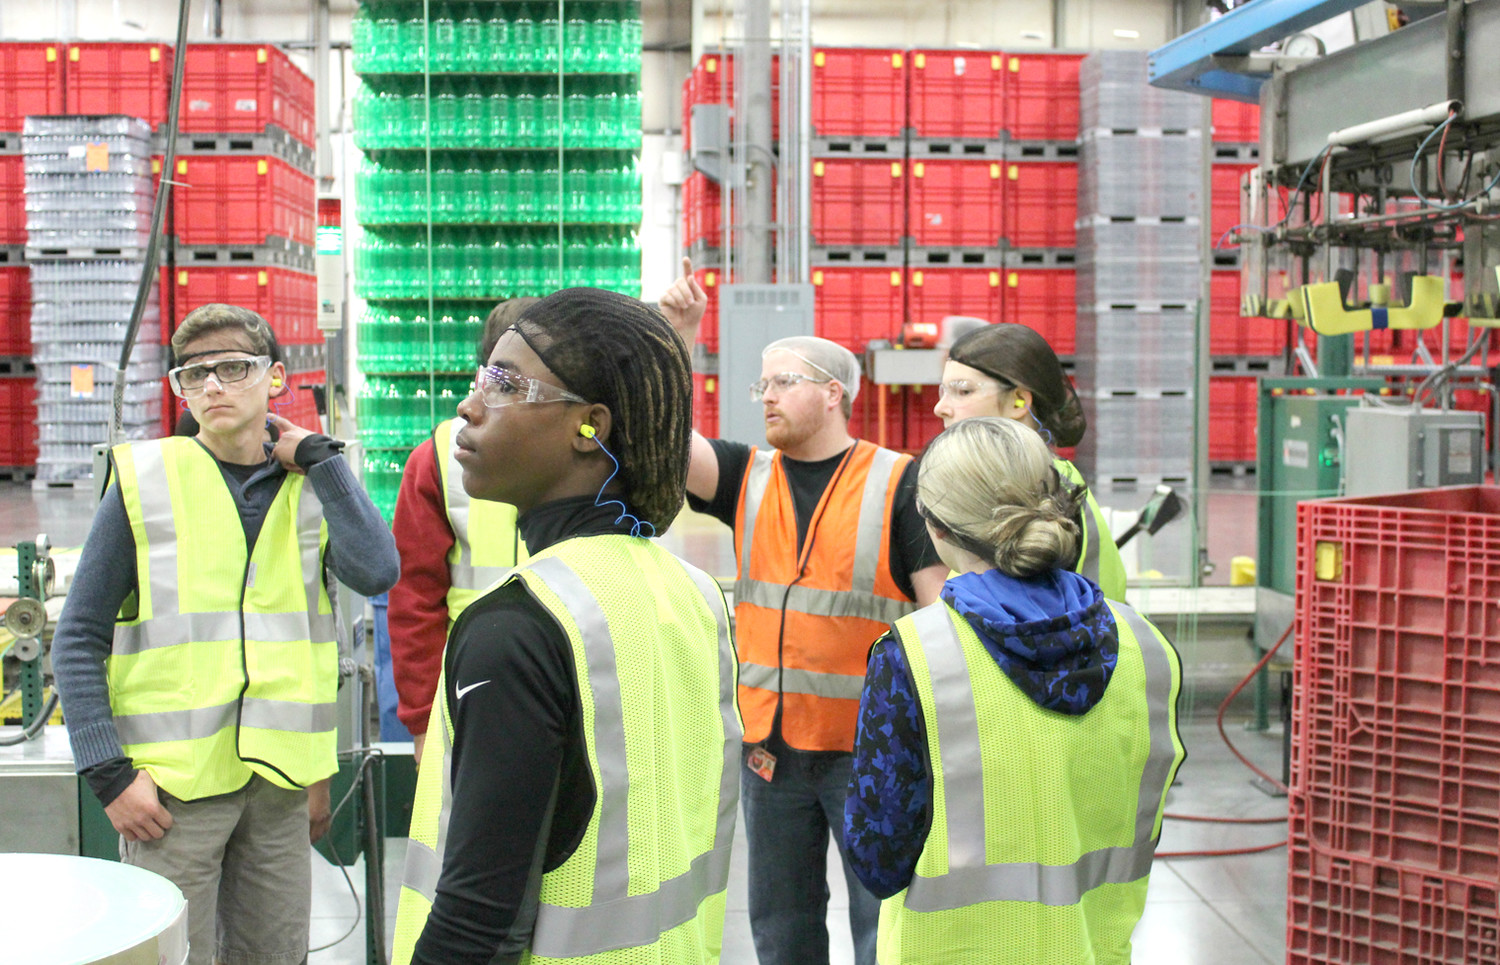 CLEVELAND HIGH SCHOOL students participate in a tour Friday at Southeastern Container, which makes plastic bottles as a supplier for Coca-Cola. Their tour was part of Cleveland Associated Industries' Manufacturing Week.